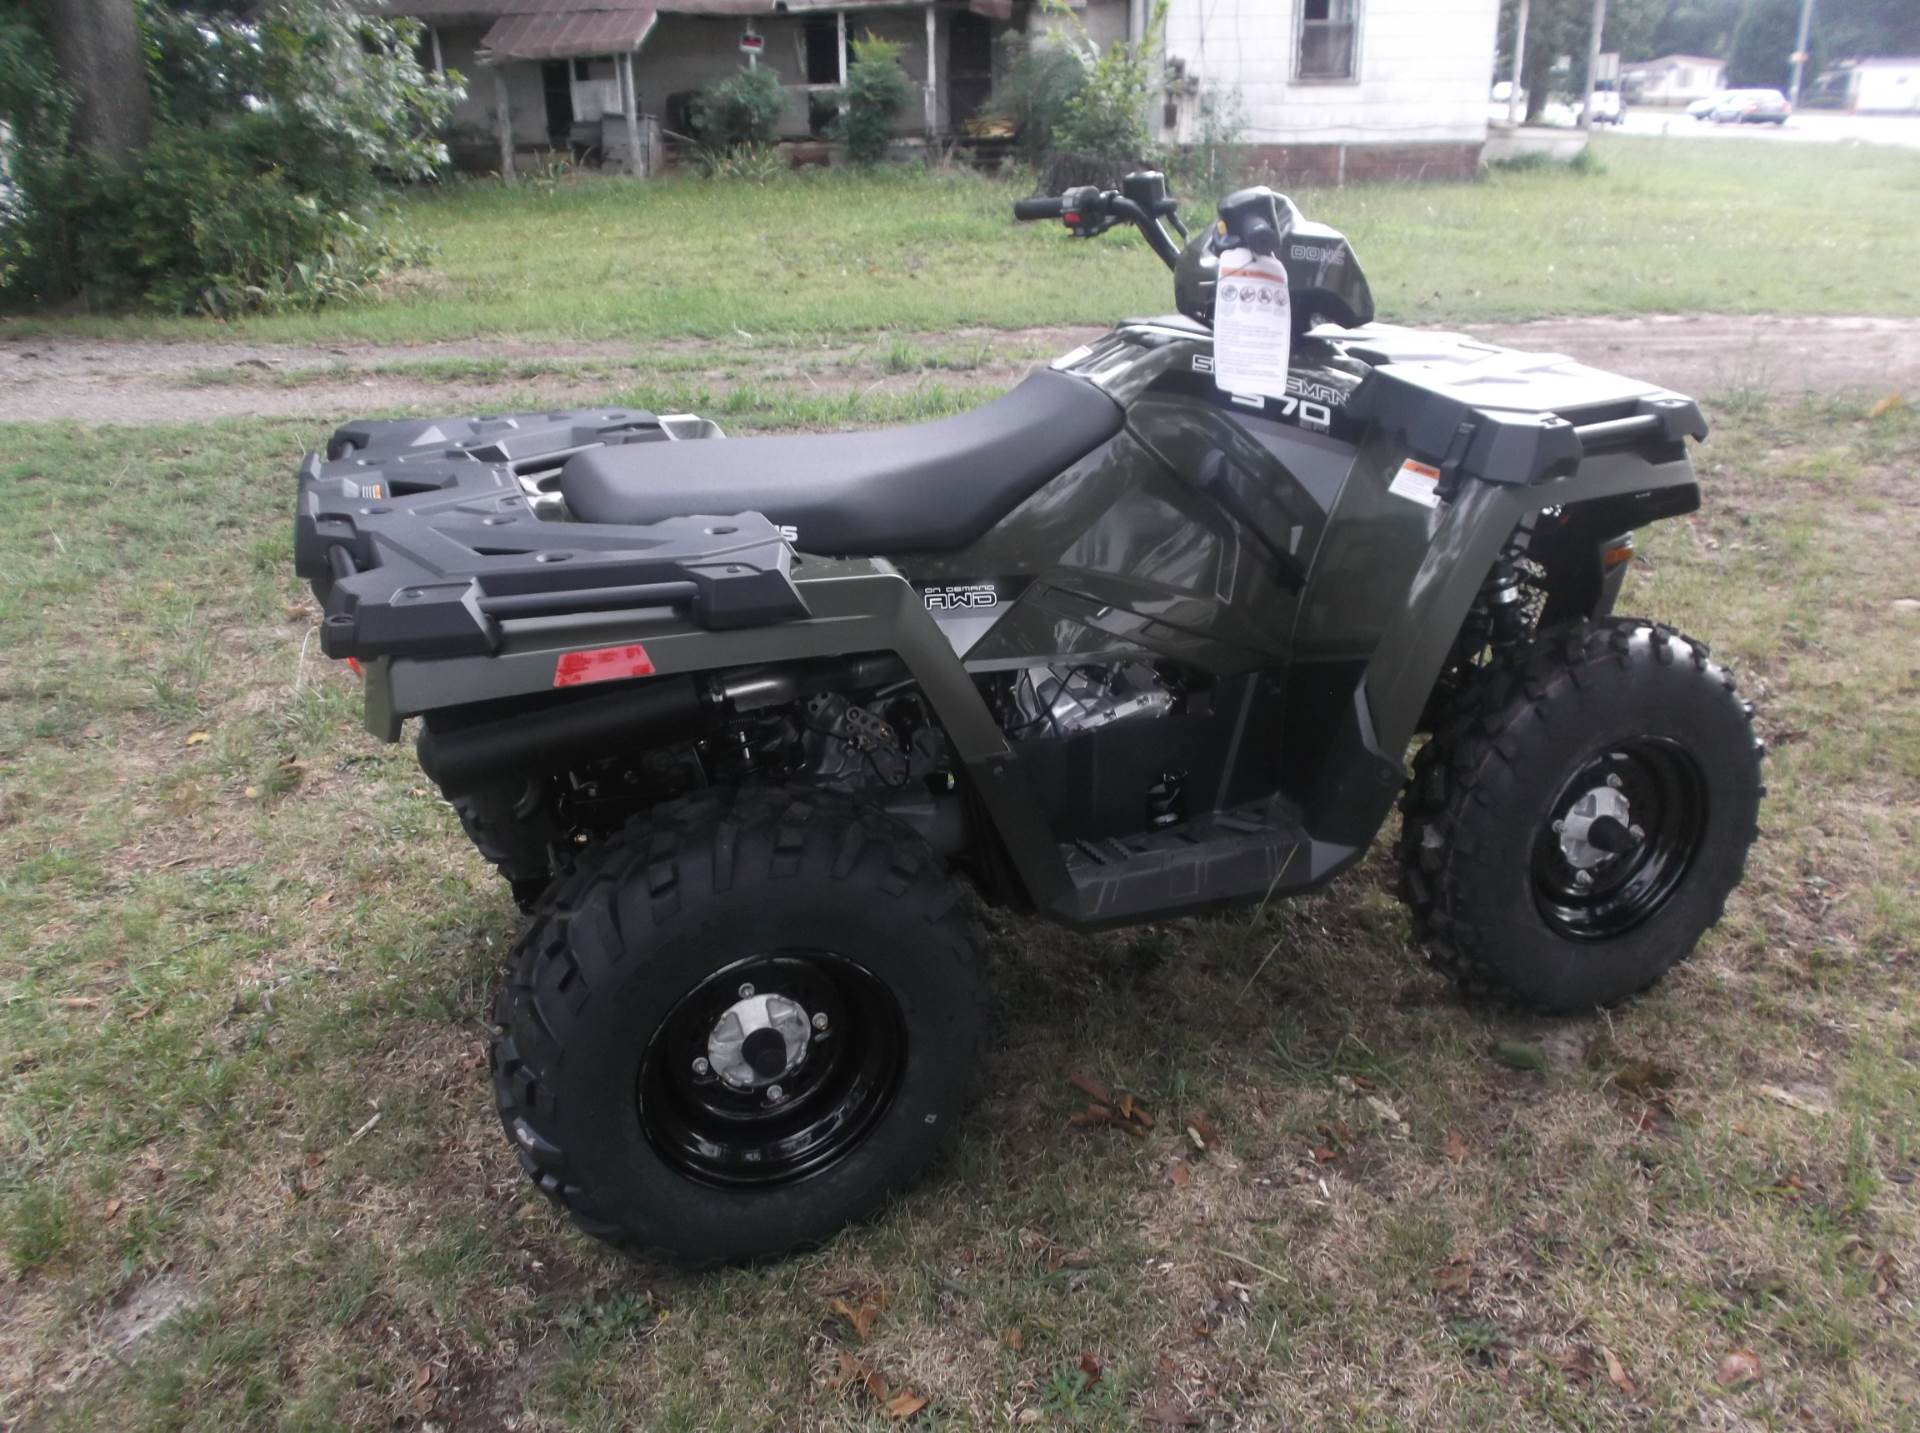 2019 Polaris Sportsman 570 in Greer, South Carolina - Photo 5